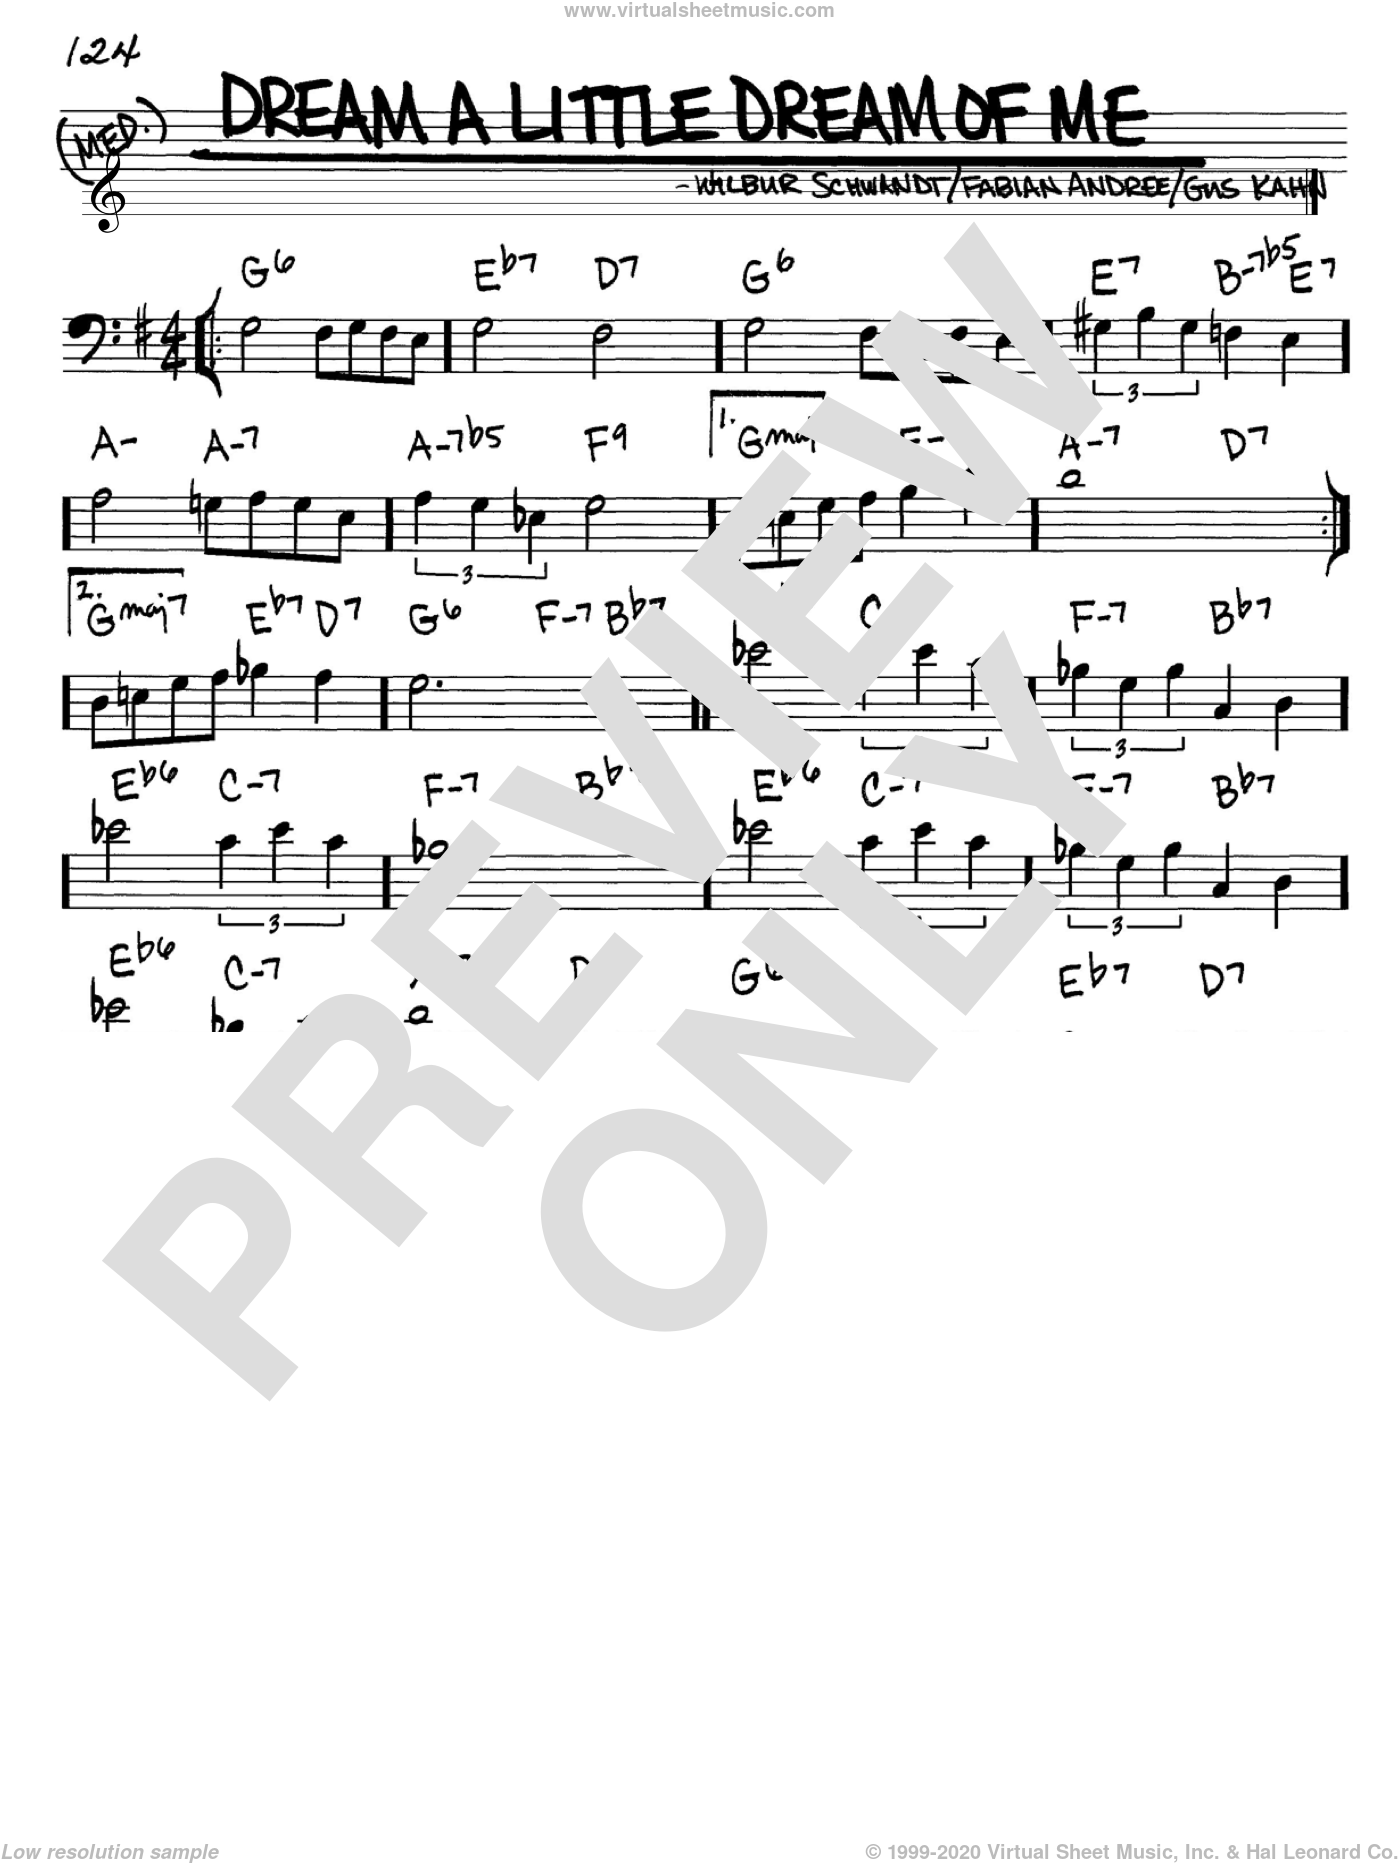 Dream A Little Dream Of Me sheet music for voice and other instruments (Bass Clef ) by Wilbur Schwandt, Louis Armstrong, The Mamas & The Papas and Gus Kahn. Score Image Preview.